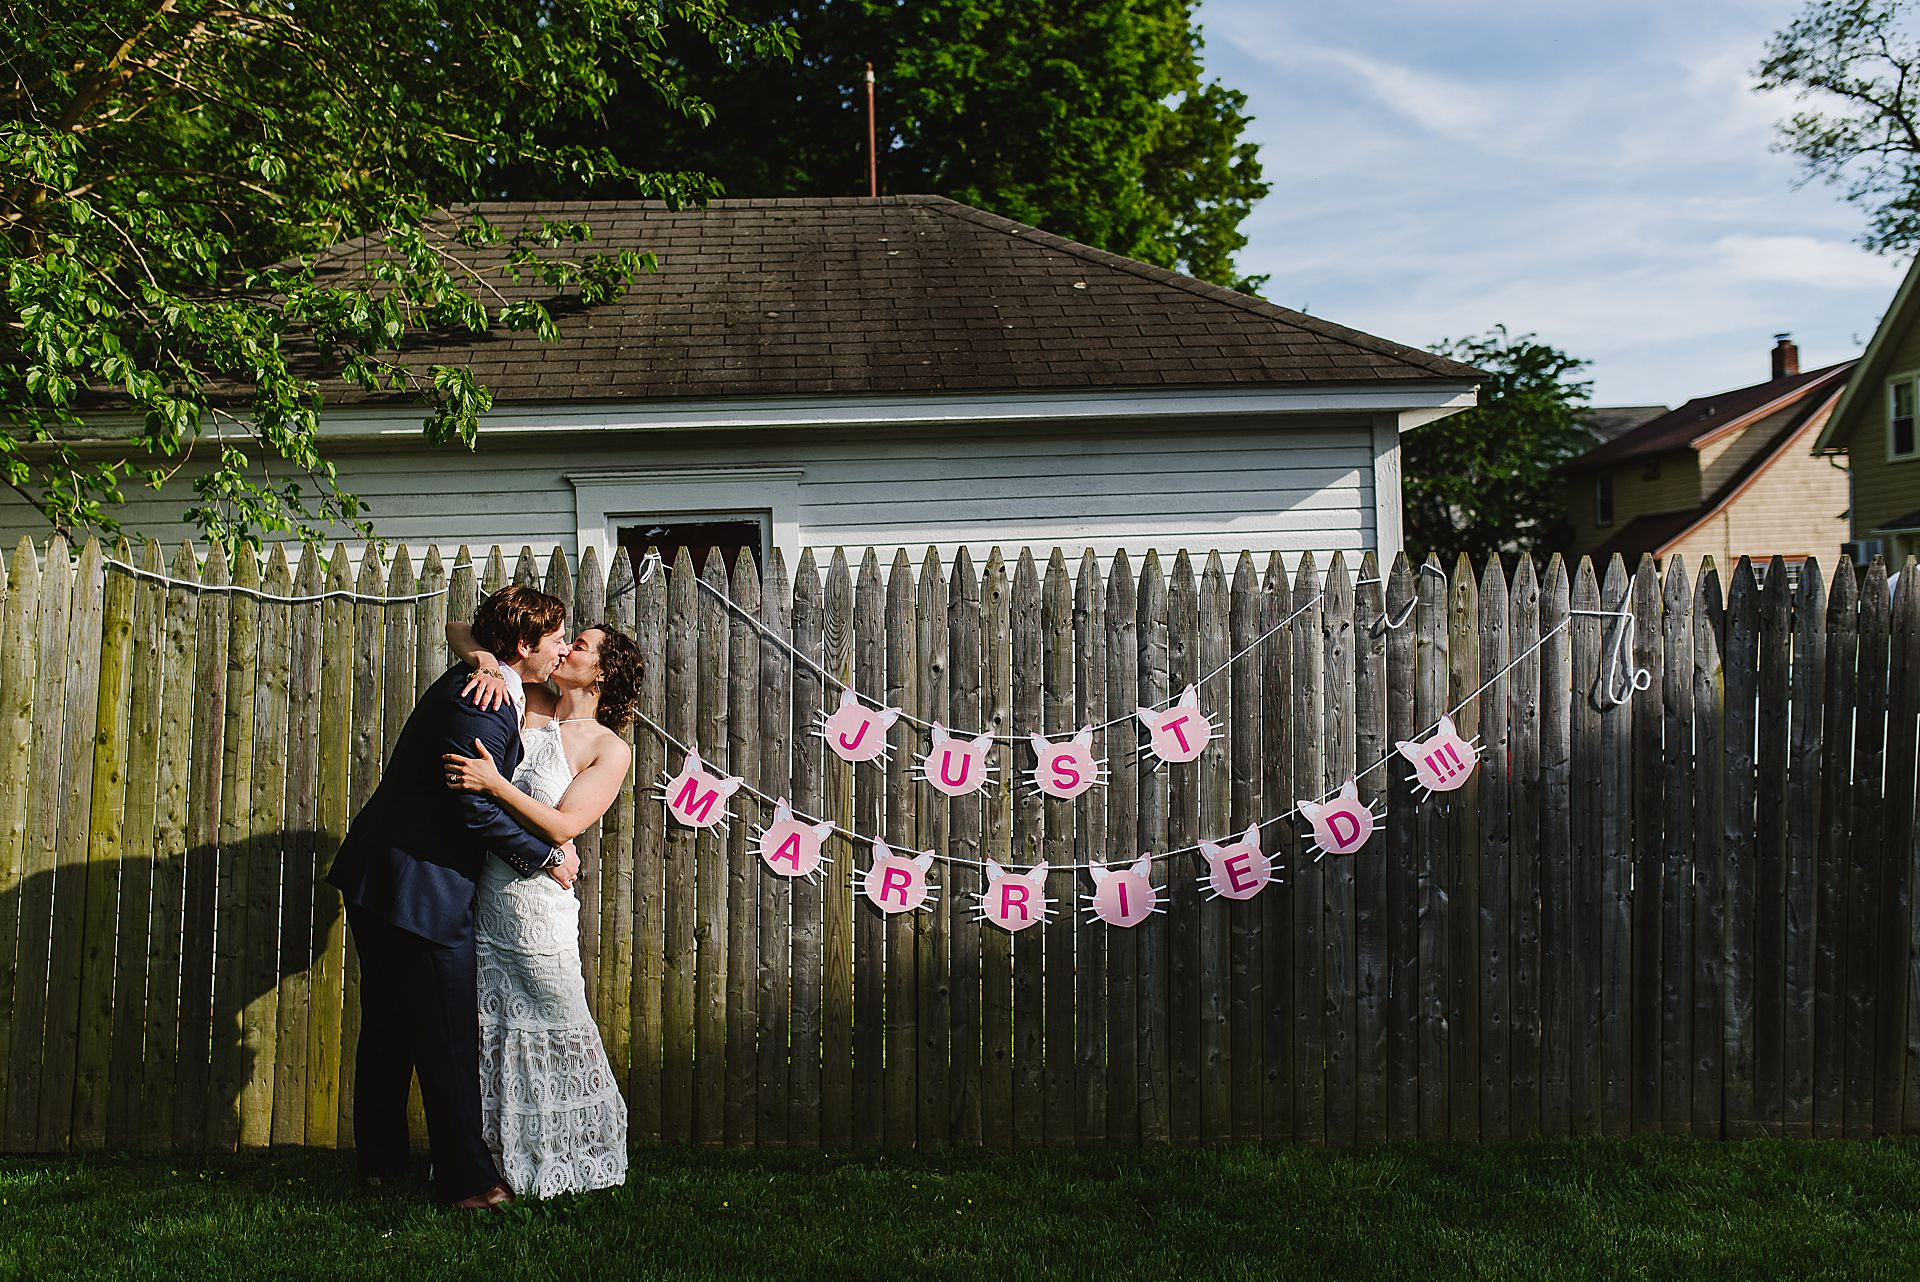 CT Wedding Couple Portraits | The bride and groom share a playful kiss